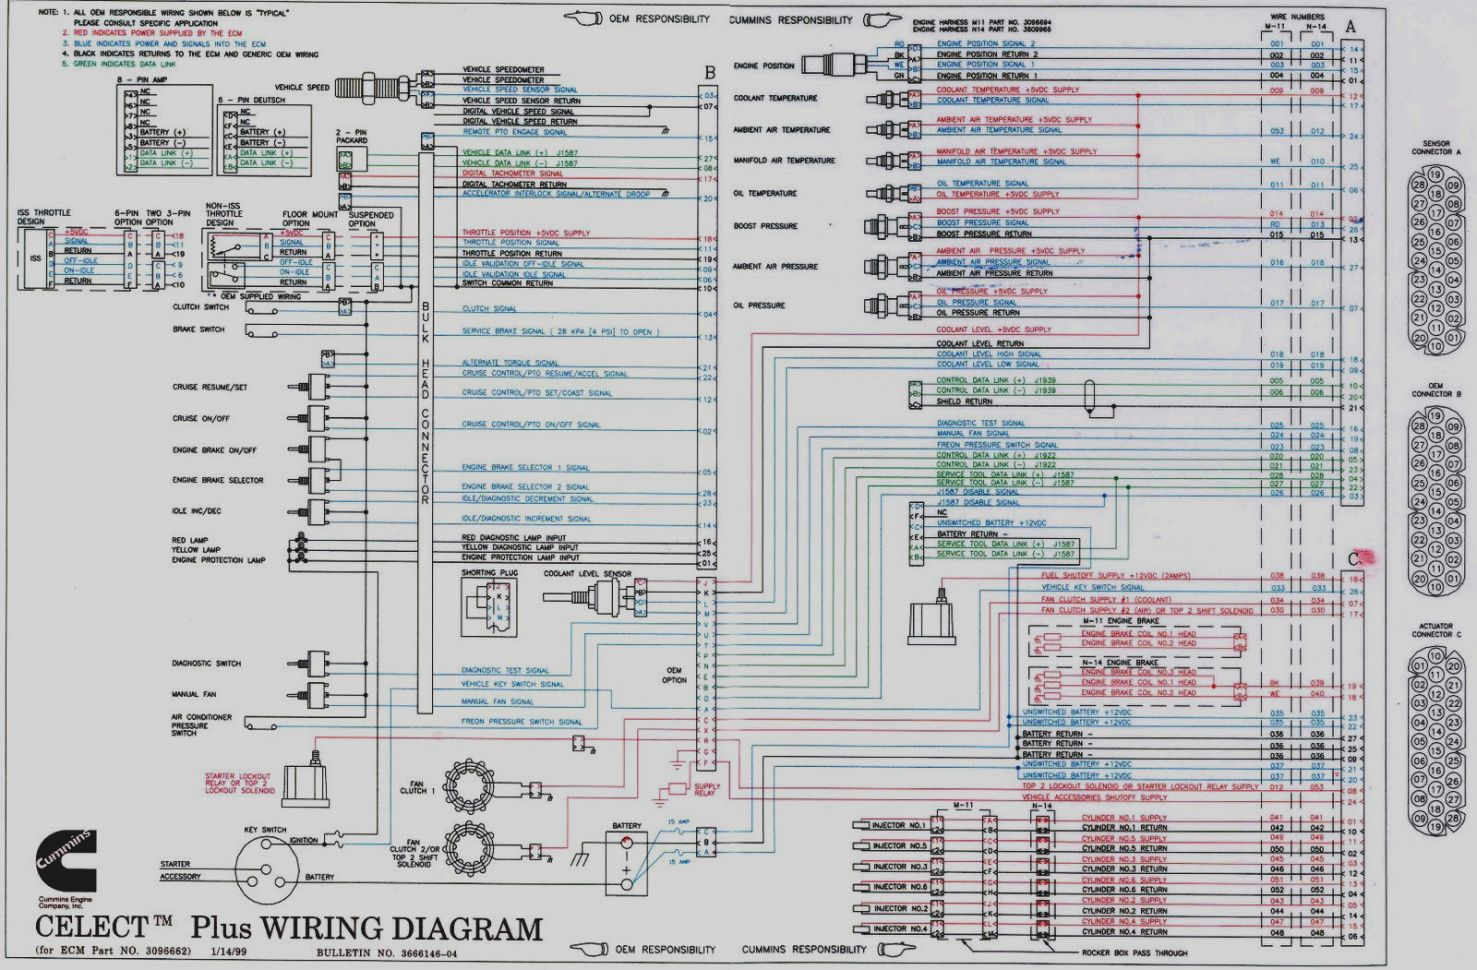 medium resolution of awesome cummins n14 celect plus wiring diagram freightliner columbia cummins n14 celect wiring diagram awesome cummins